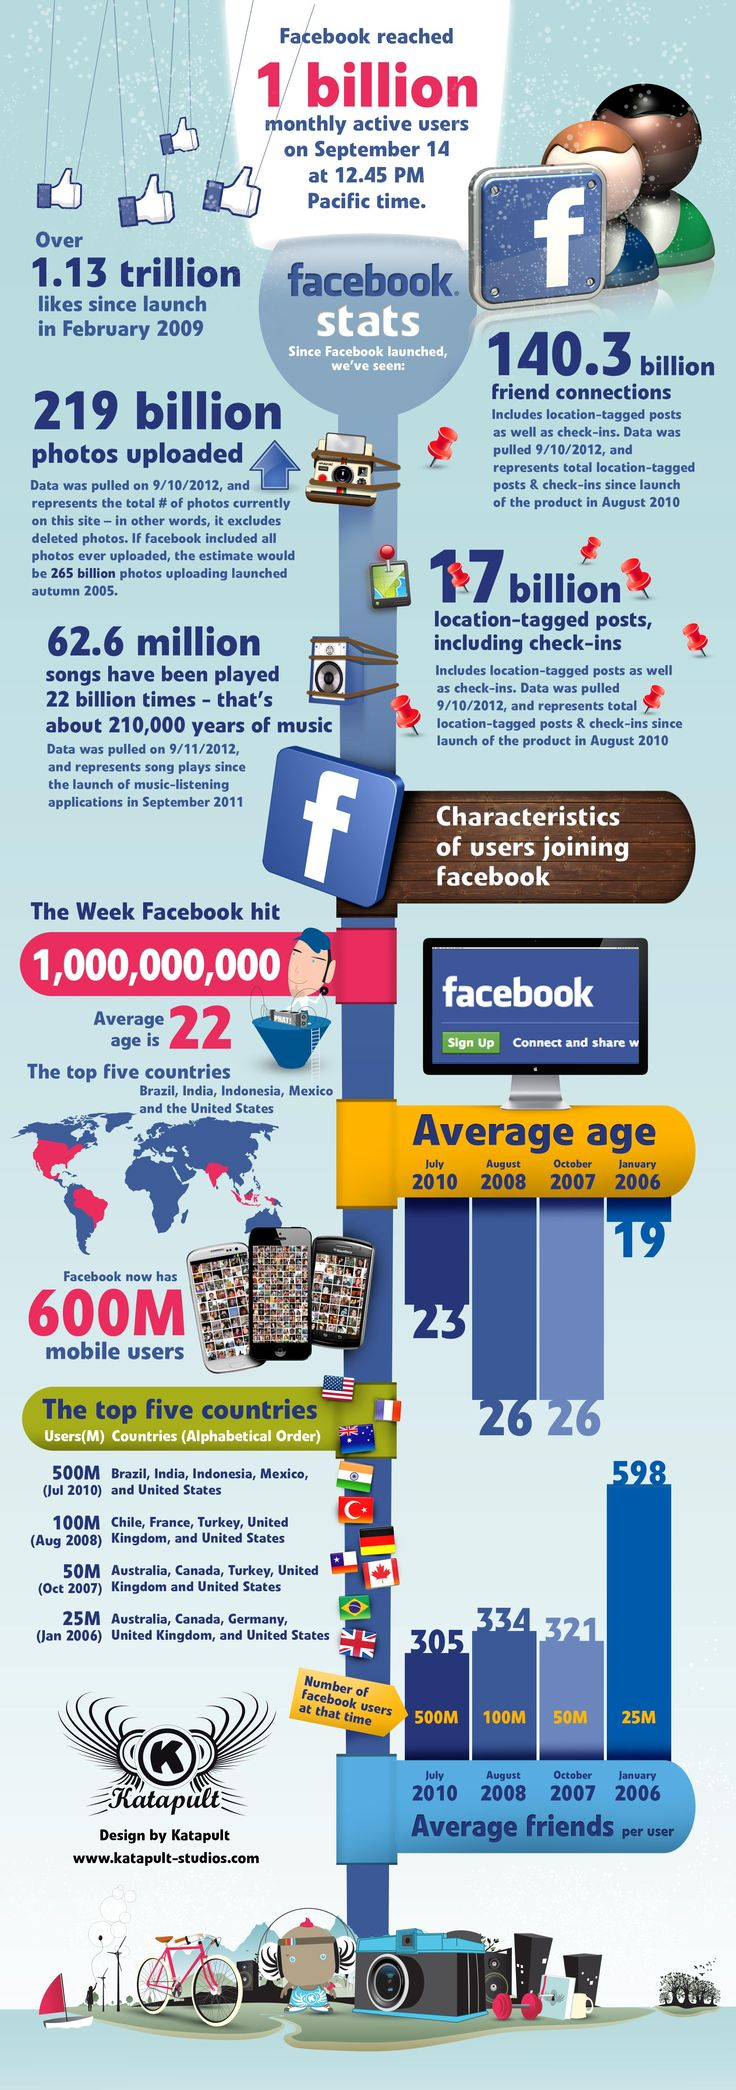 FaceBook reached 1 billion monthly active users #infographic